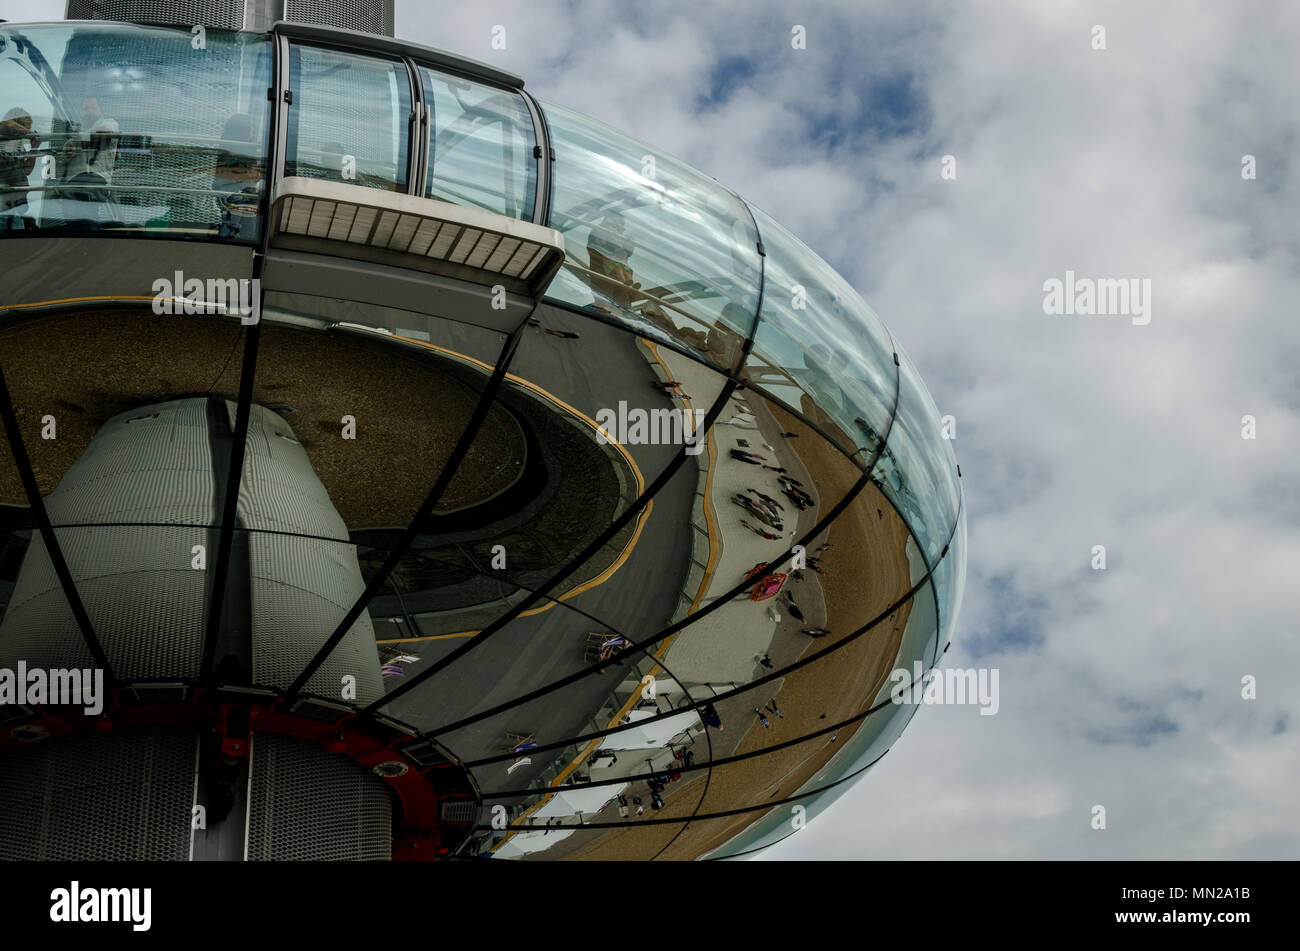 The British Airways i360 observation tower in the clouds at Brighton, England - Stock Image